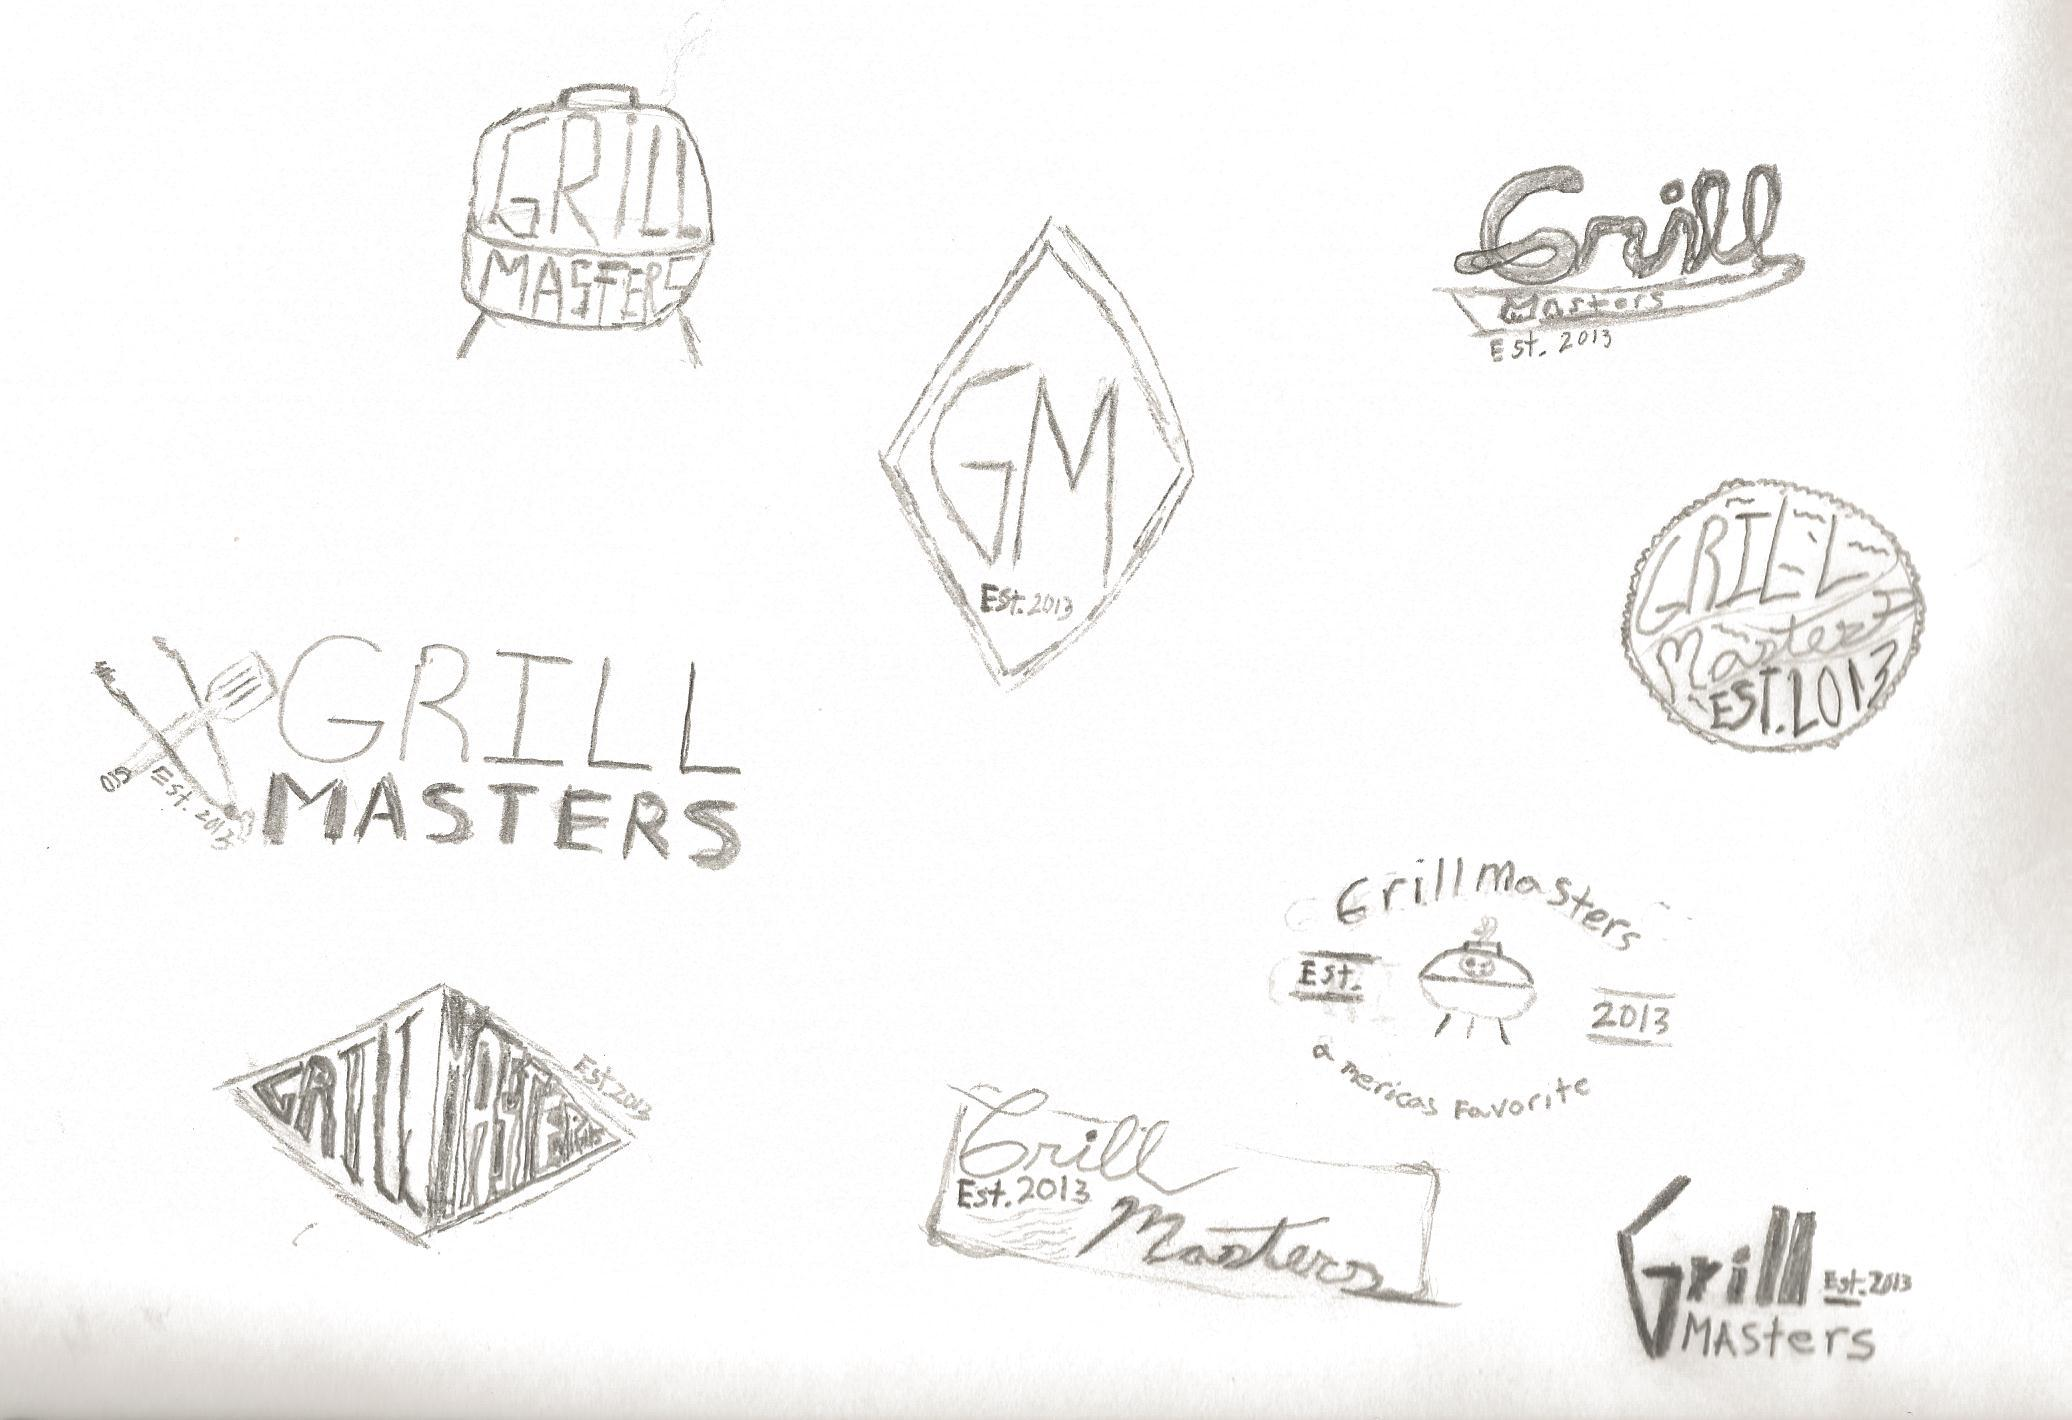 Grill Masters - image 1 - student project